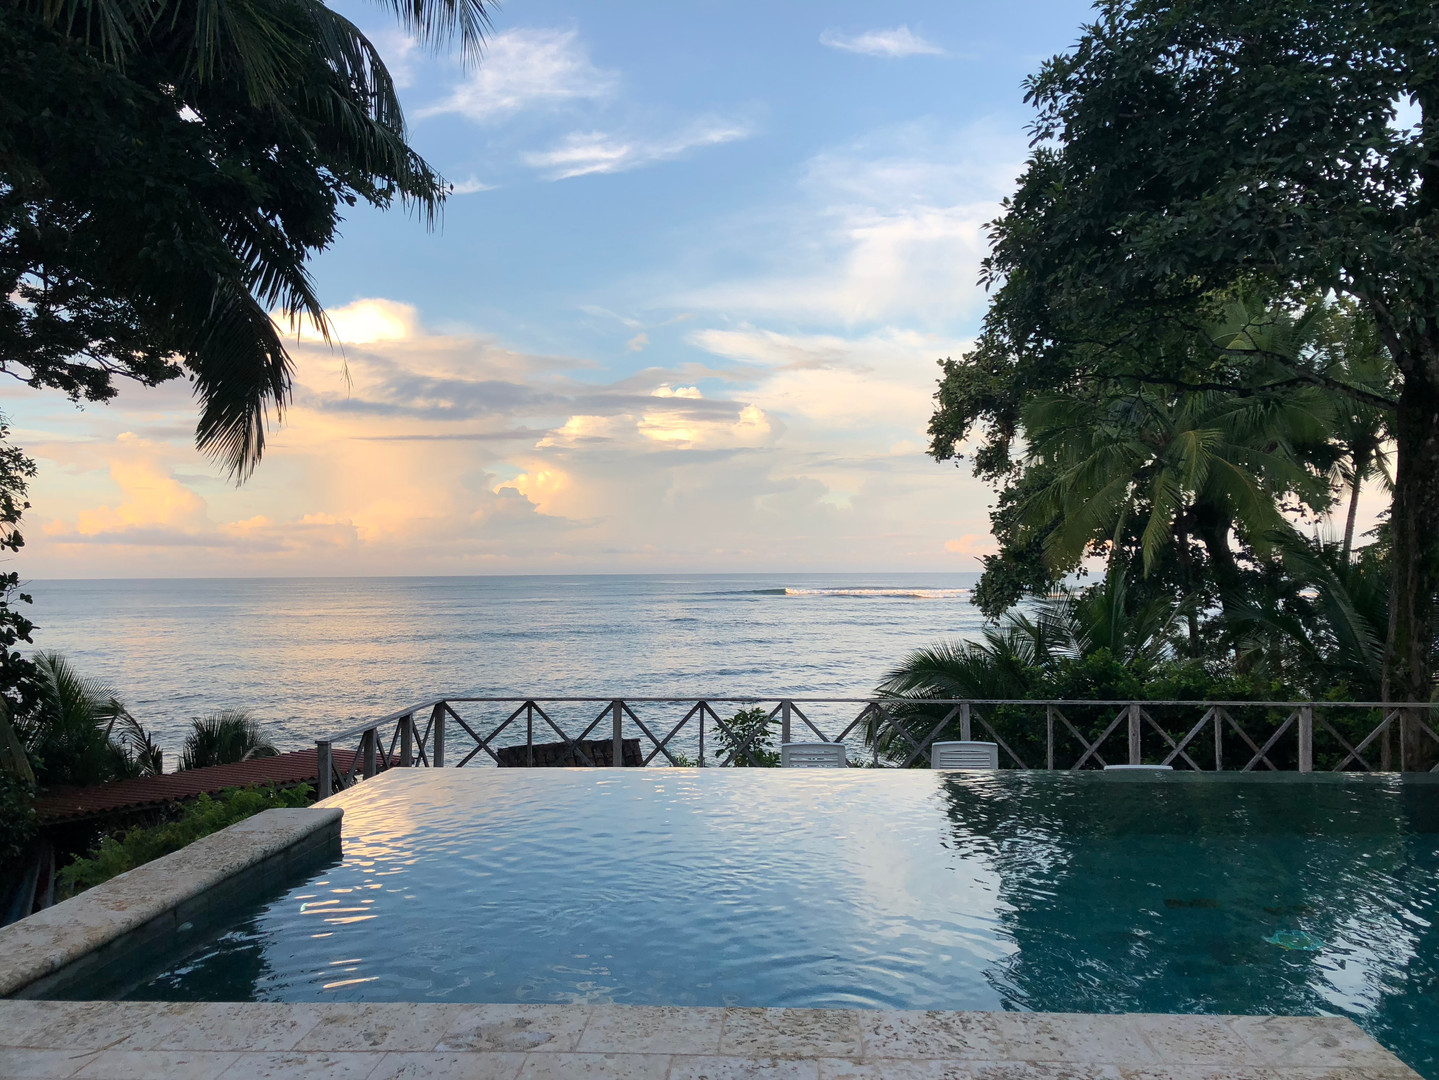 Sunrise over the infinity pool at Hotel Santa Catalina, Veraguas, Panama